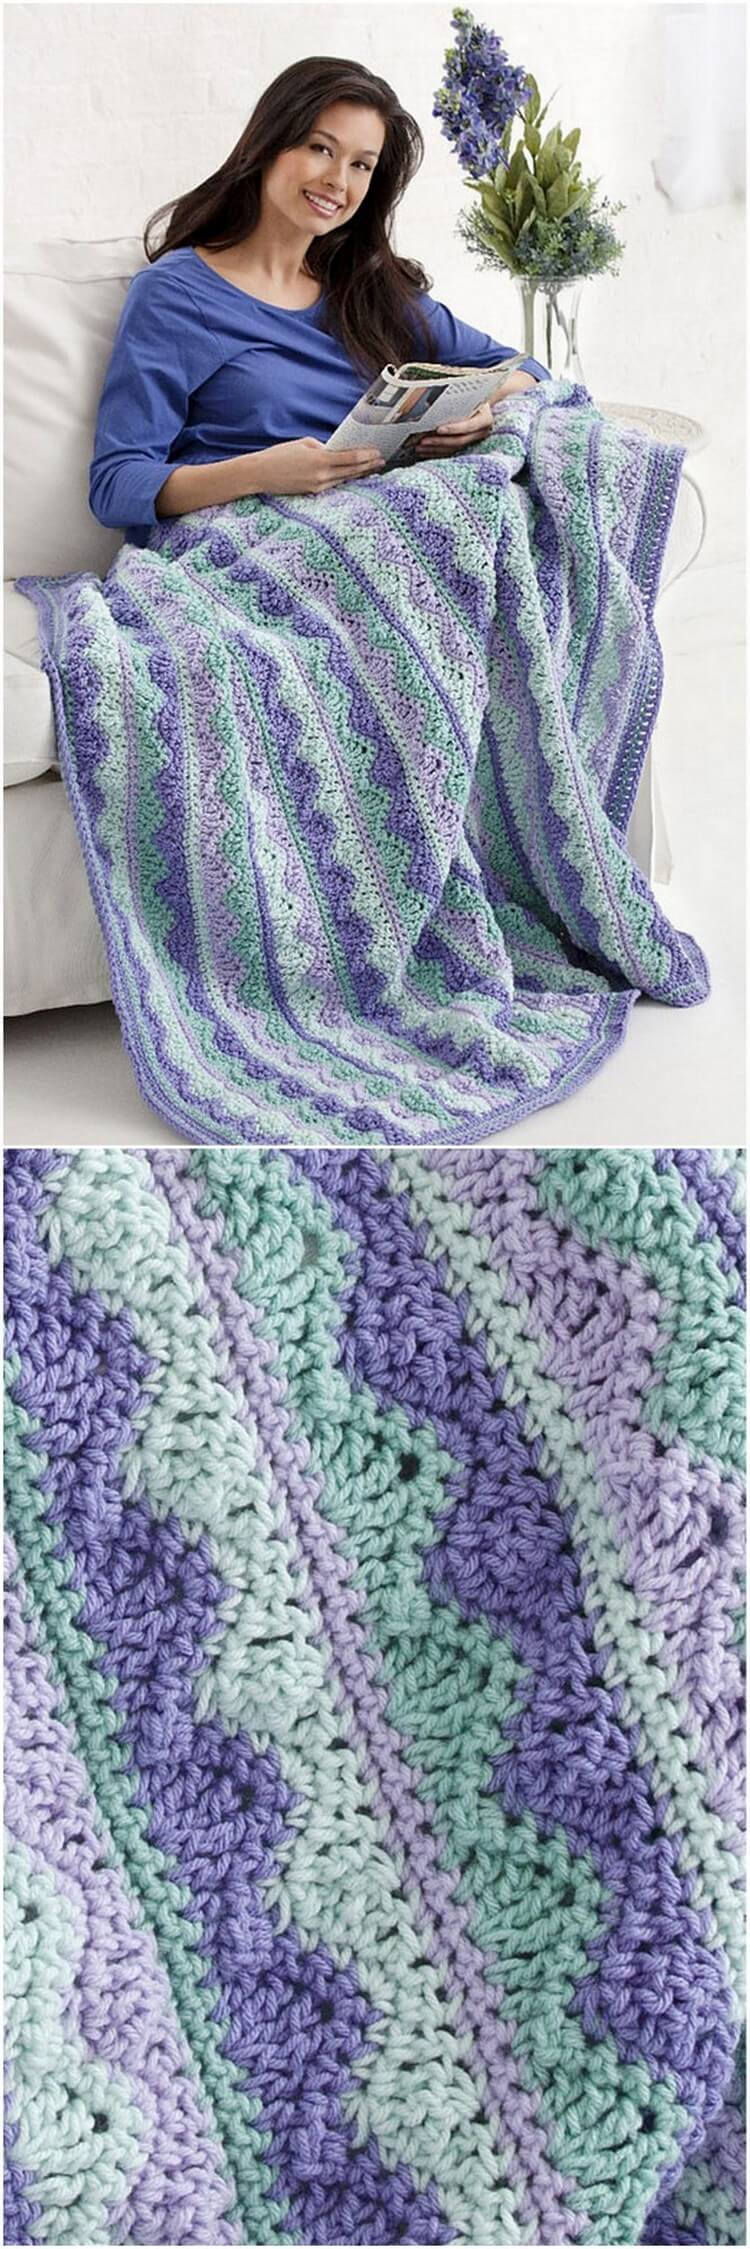 Crochet Blanket Pattern (33)